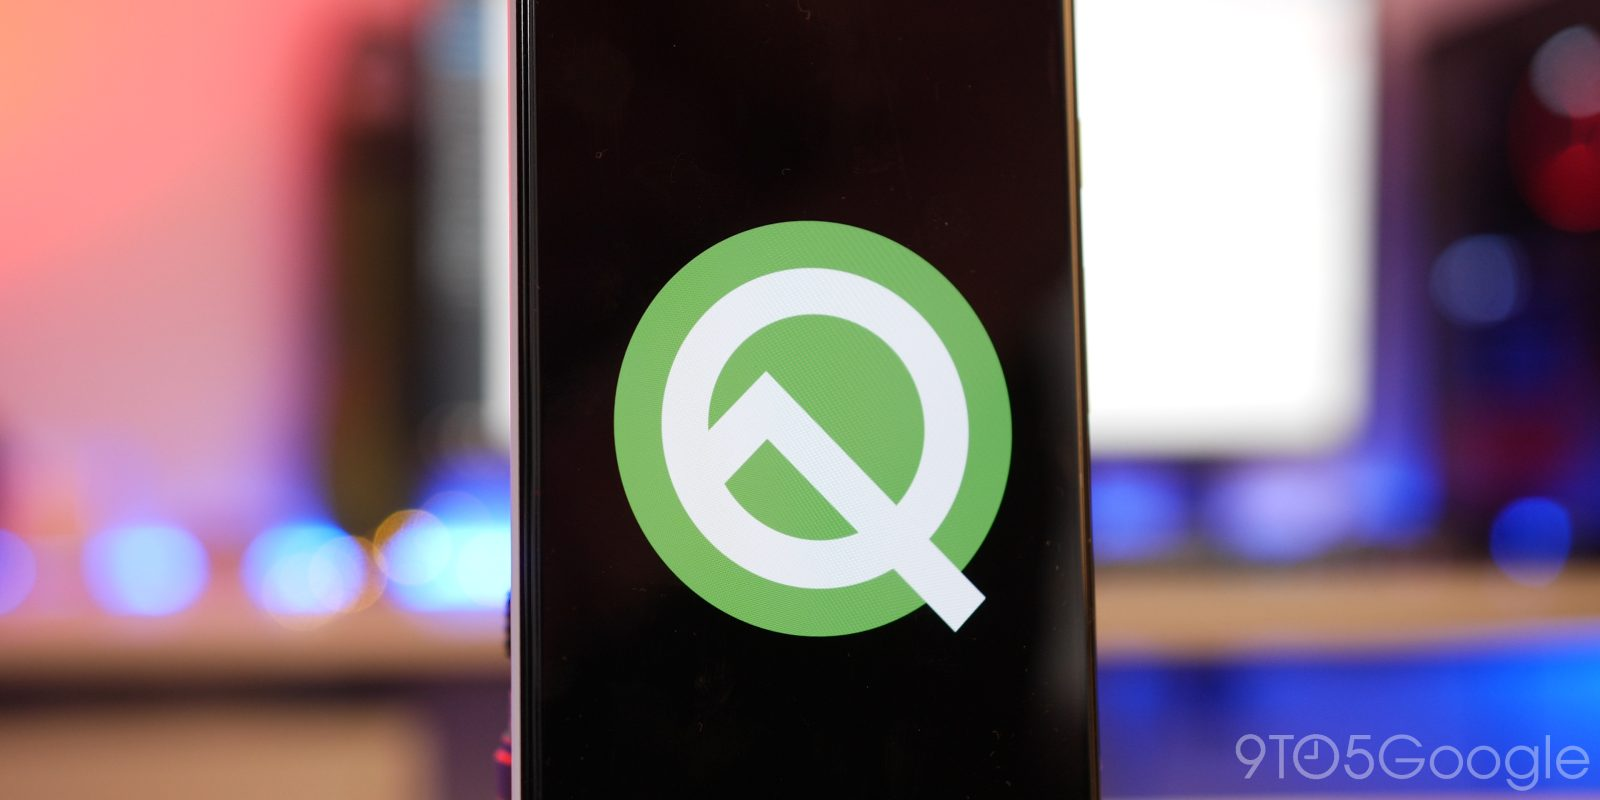 Android Q Beta 3: Top 7 new features [Video] - 9to5Google